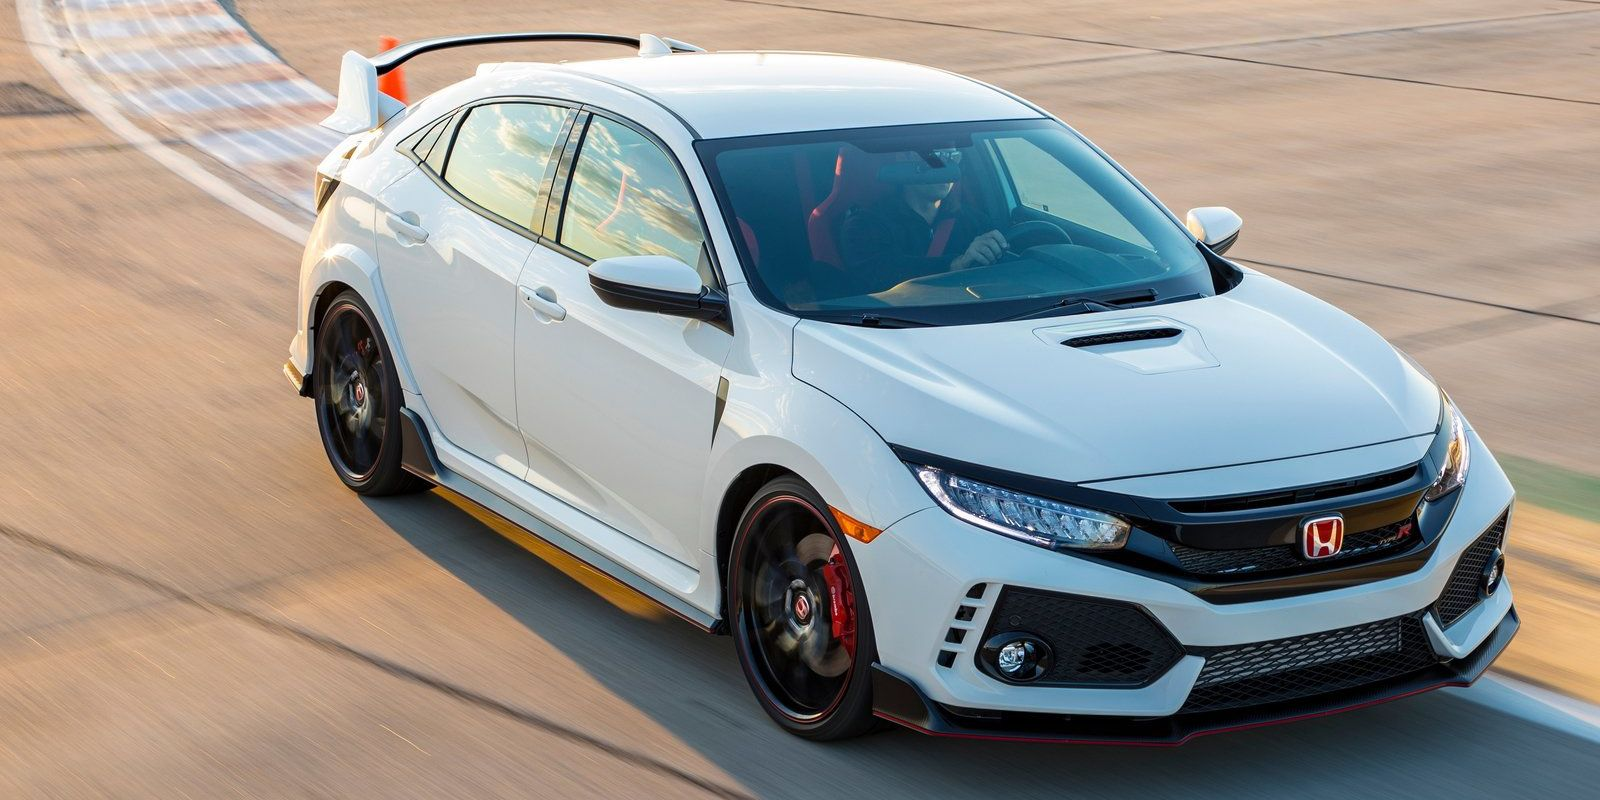 20 best performance cars under 50 000 fastest cars under 50k in 2018 rh roadandtrack com